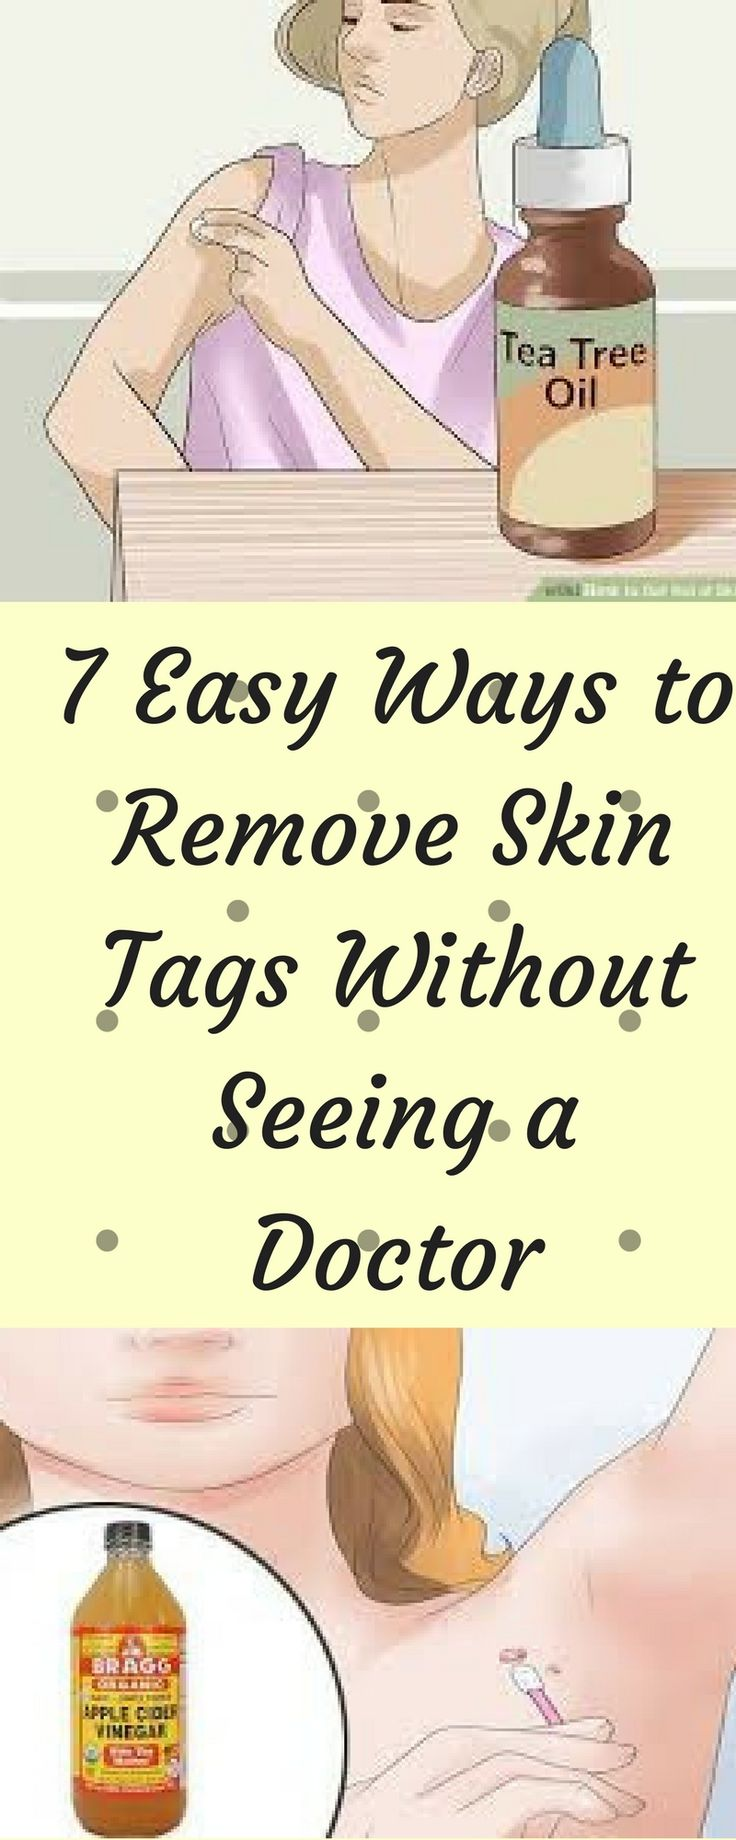 #skin tags #doctor